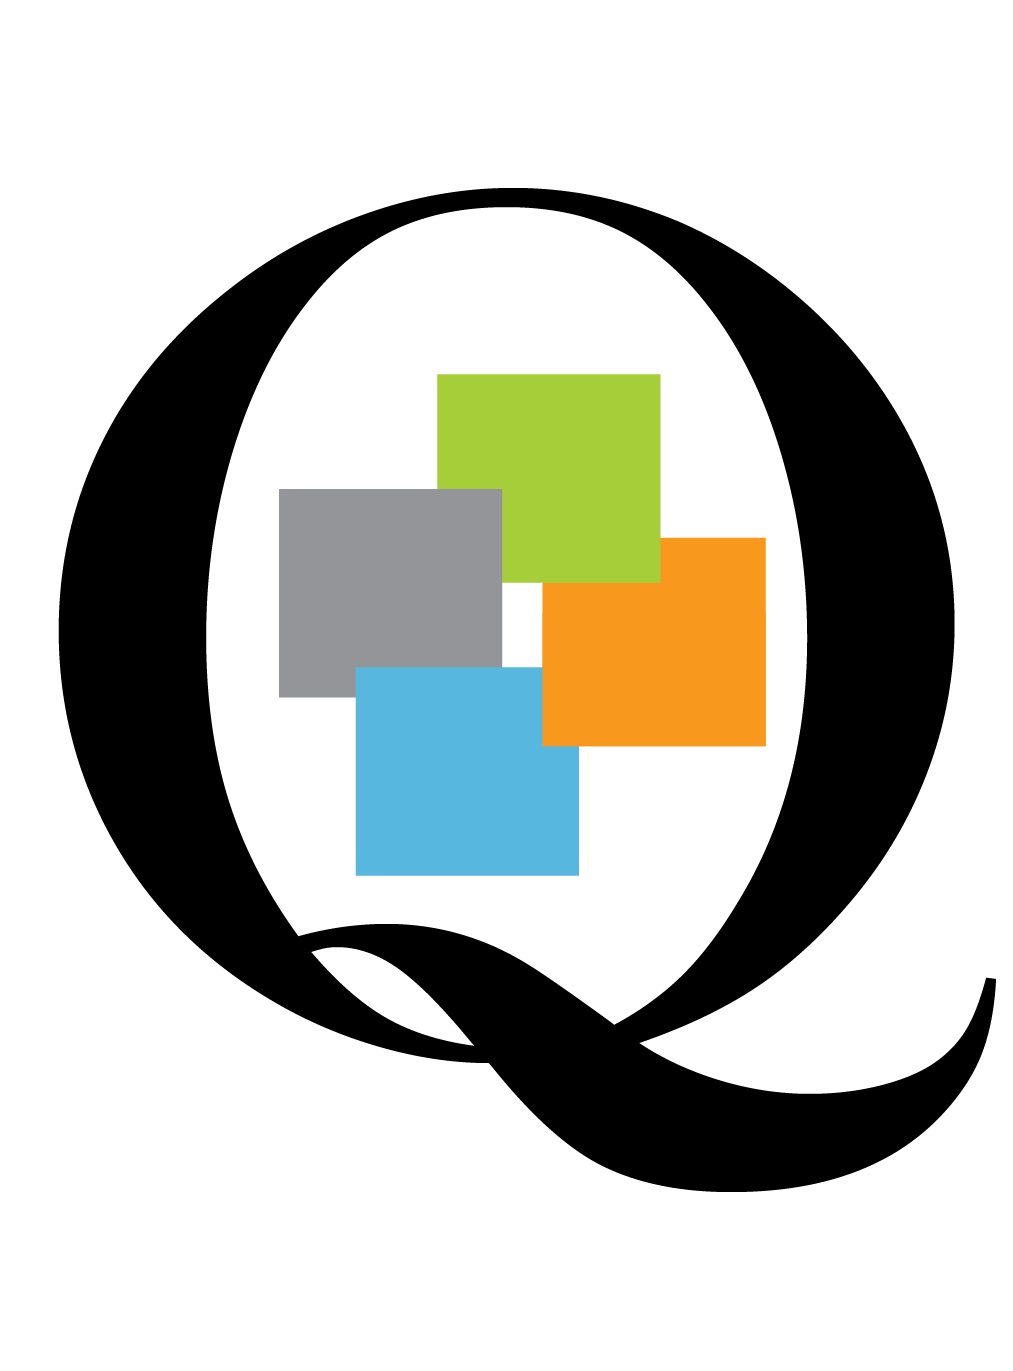 qt-logo-only-transparent